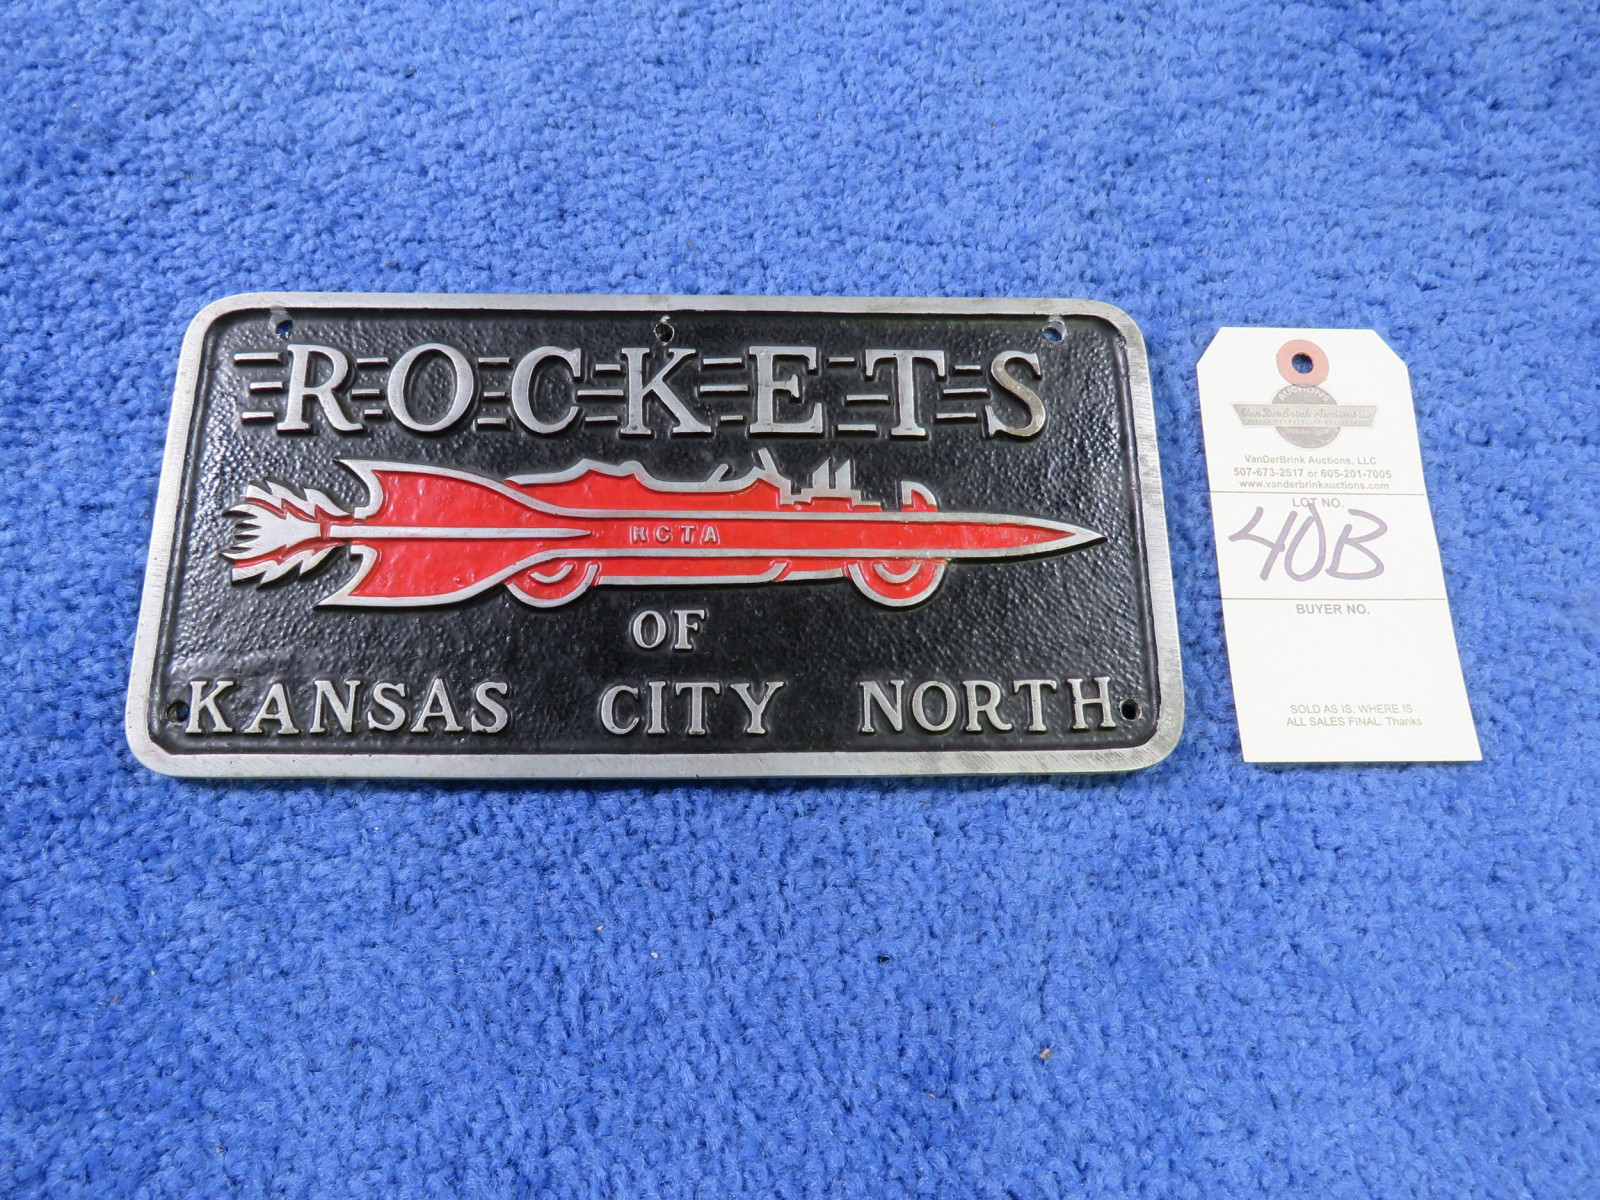 Rockets from KC North Vintage vehicle Clulb Plate- Pot Metal - Image 1